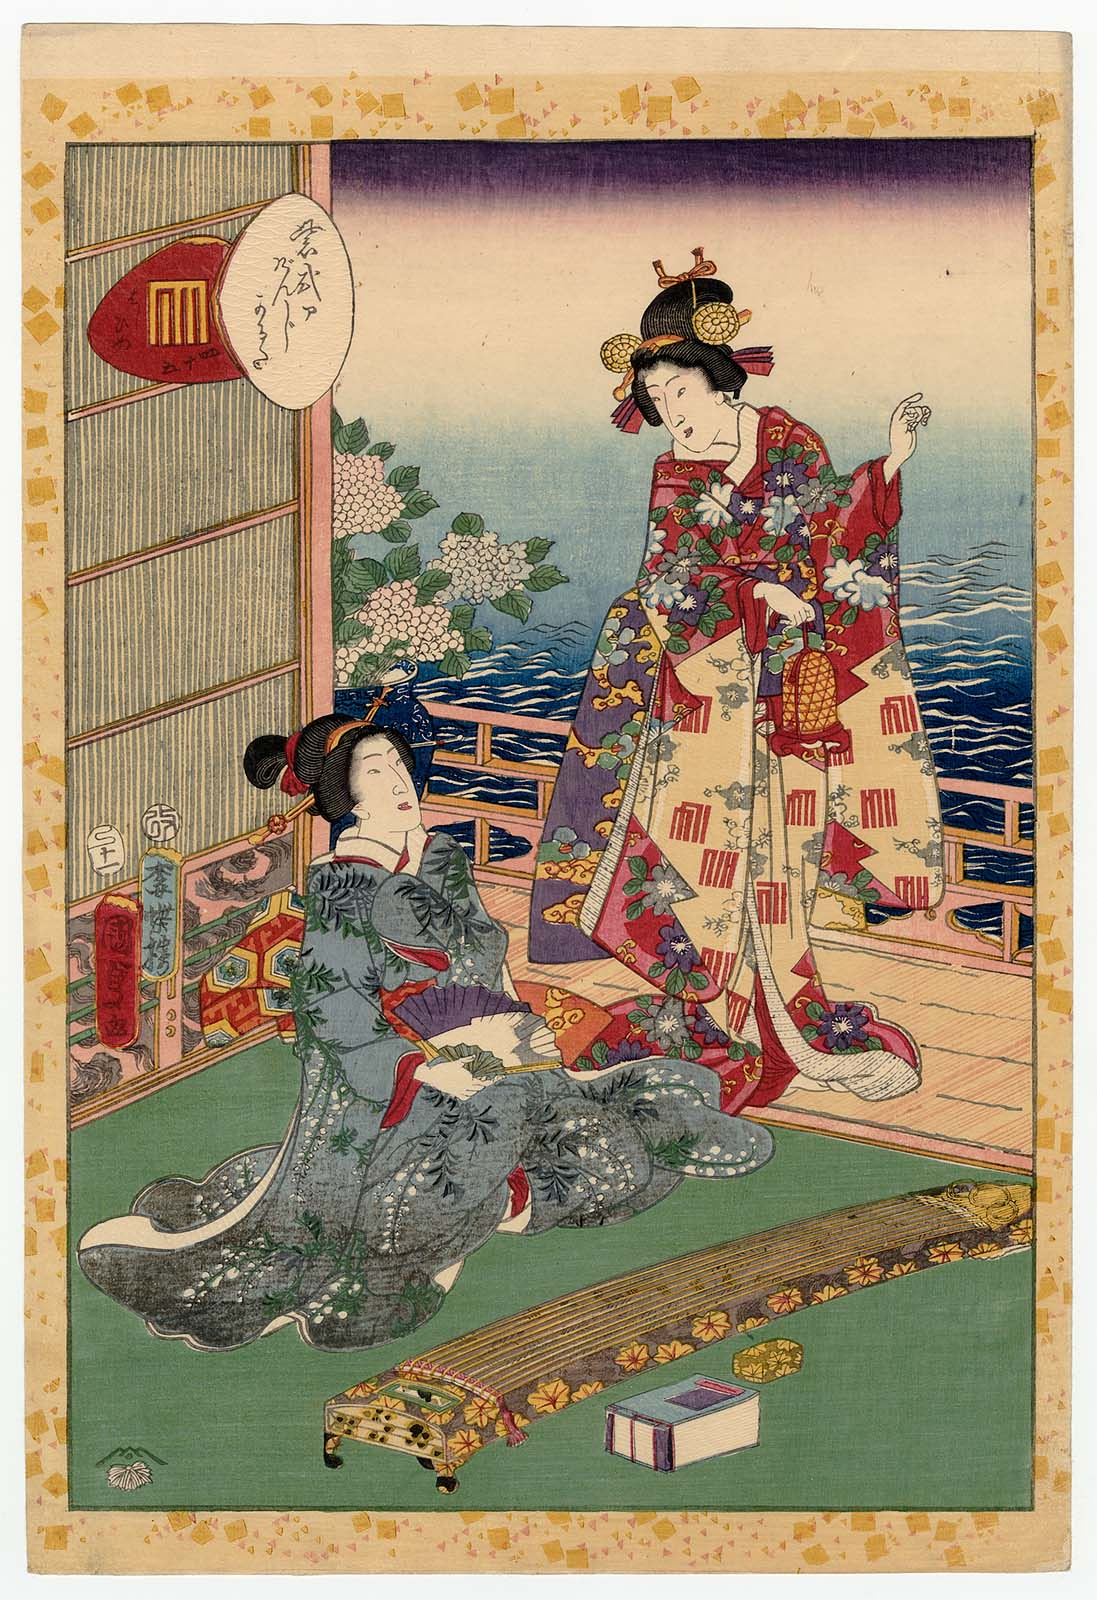 no  45  hashihime  from the series lady murasaki u0026 39 s genji